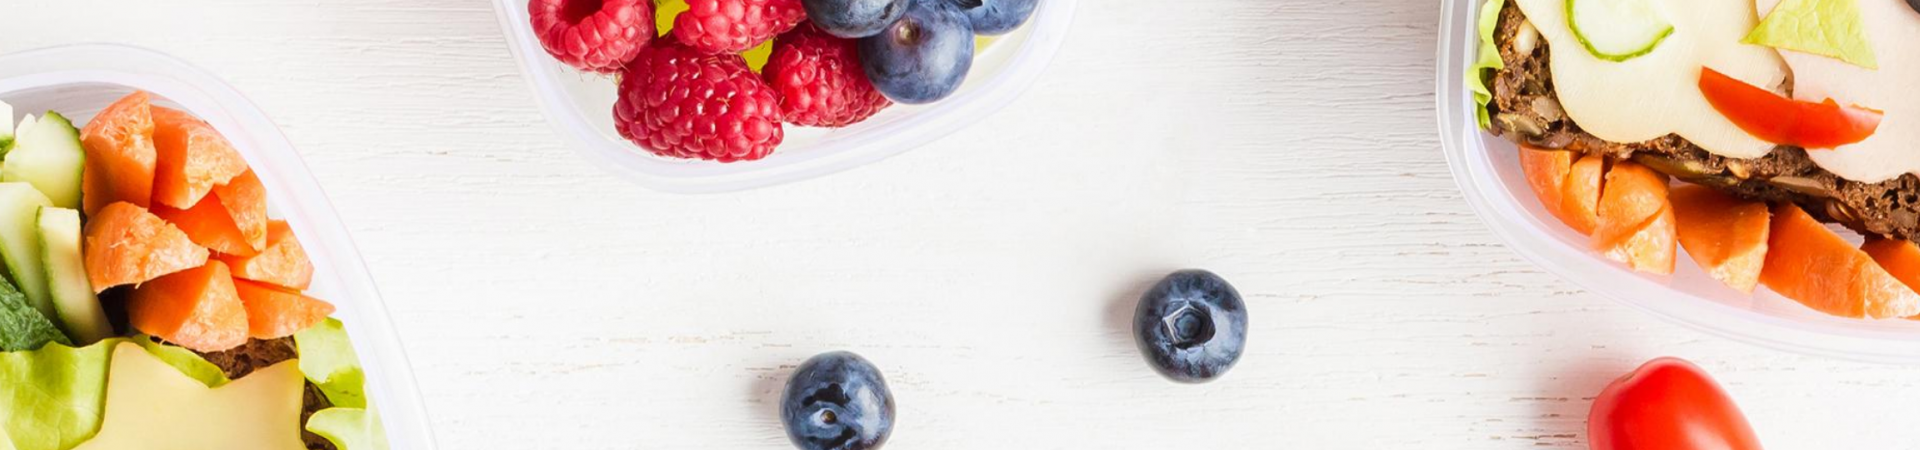 Healthy snack ideas for traveling with kids